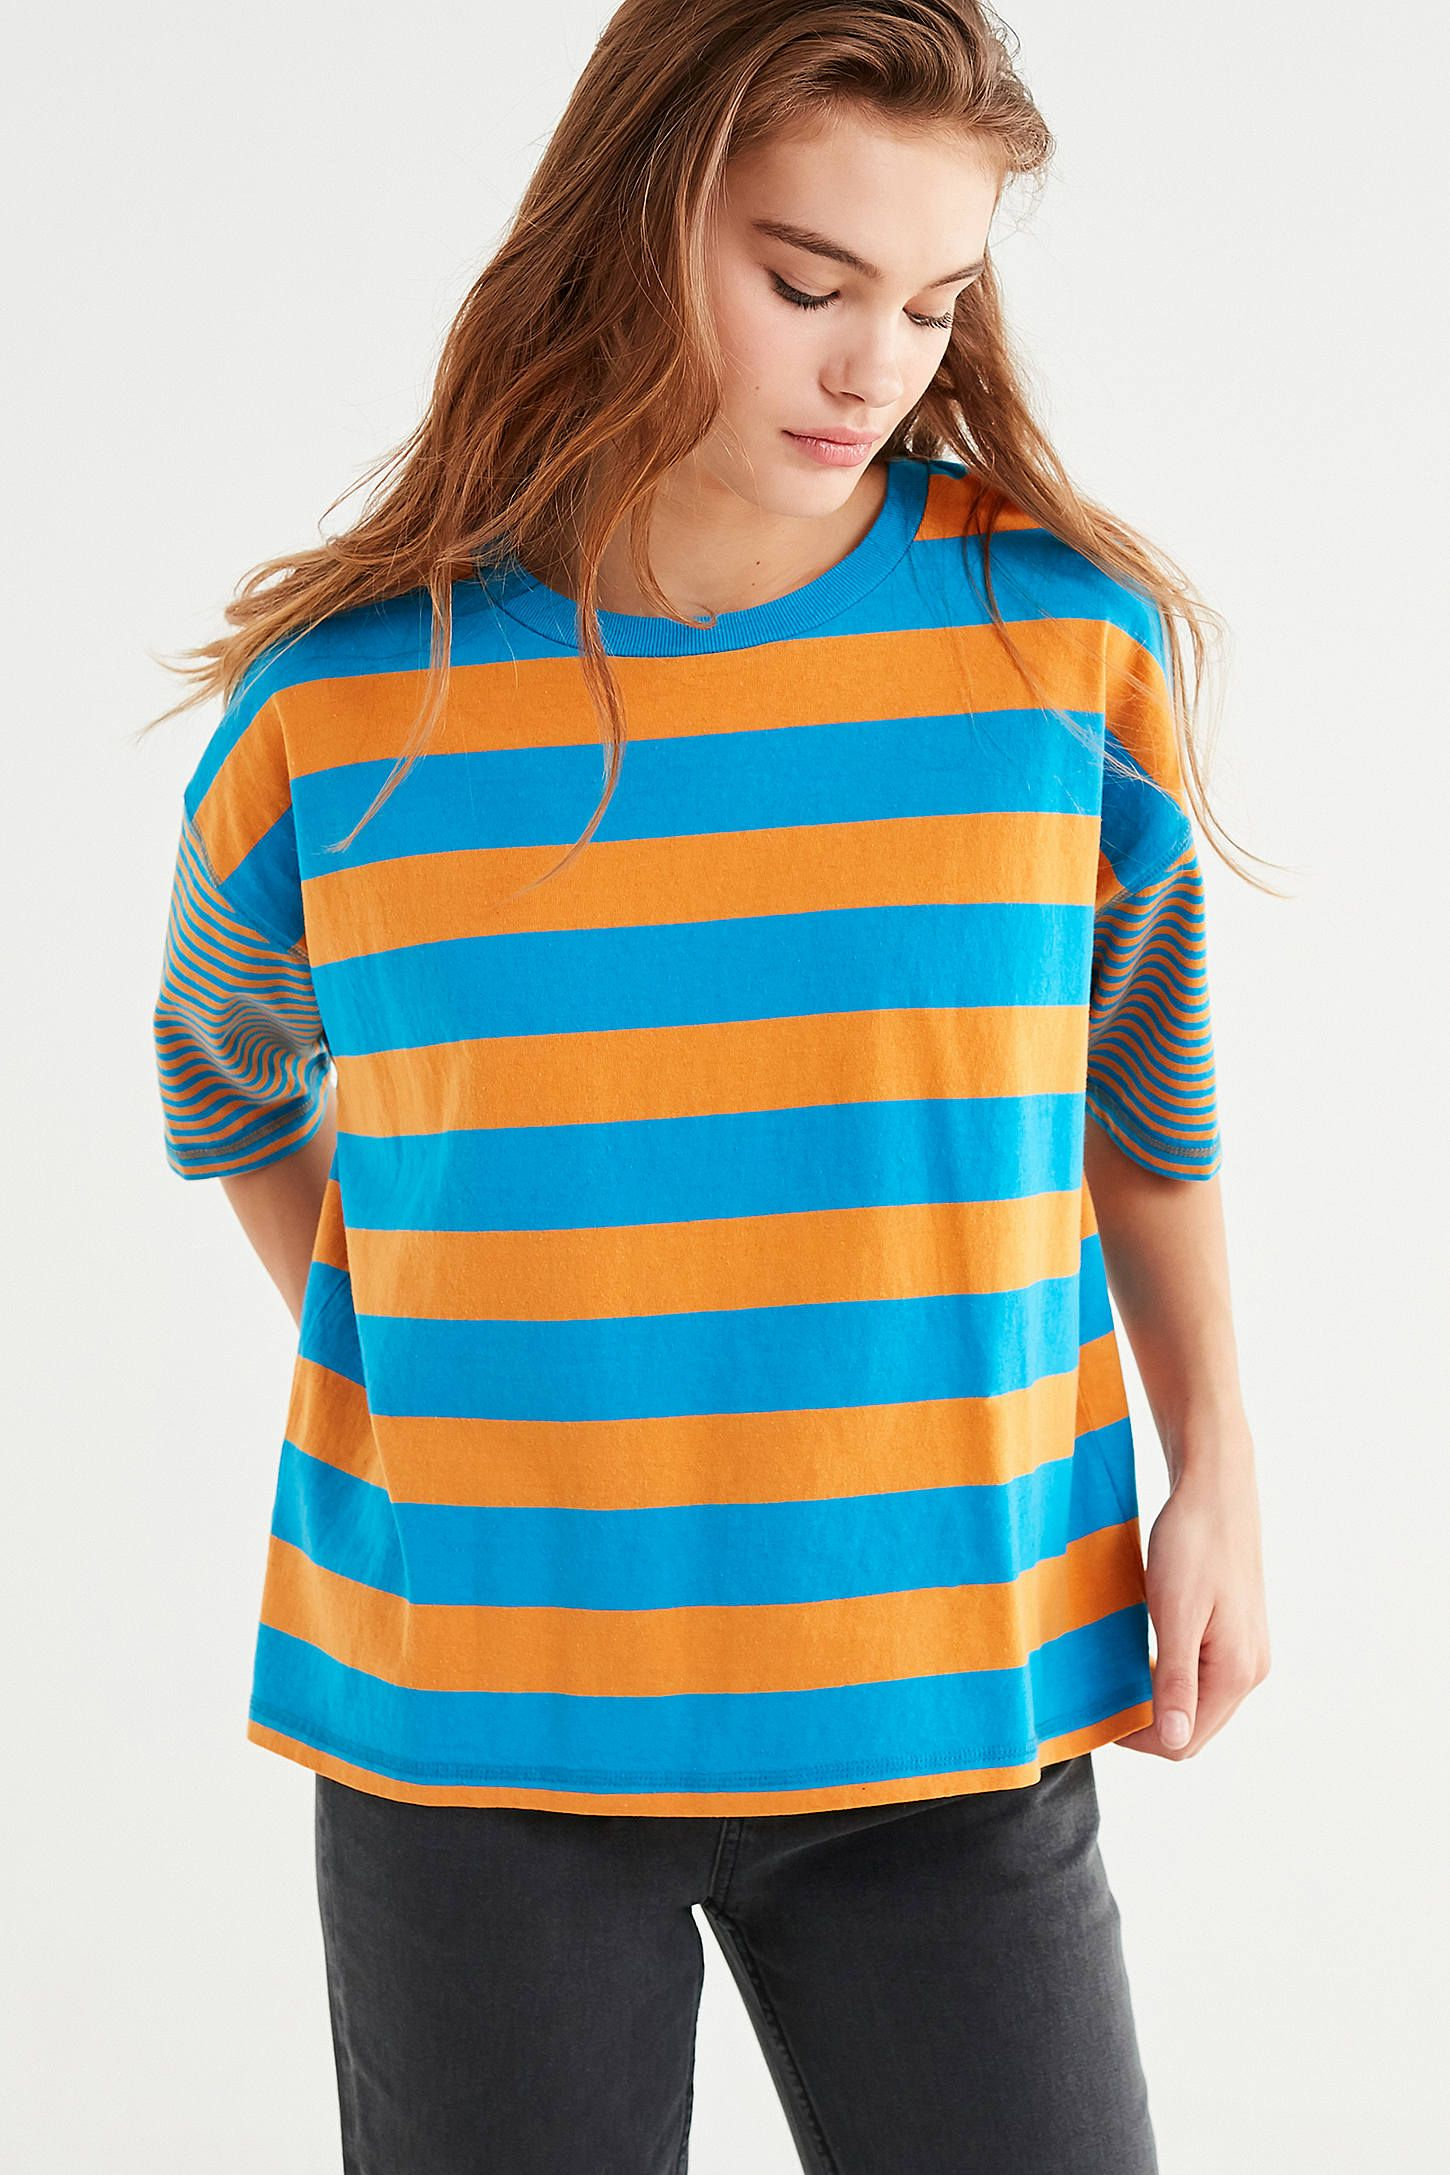 b5540d6392b56 BDG Boston Oversized Striped Ringer Tee at Urban Outfitters. LOVE these  colors